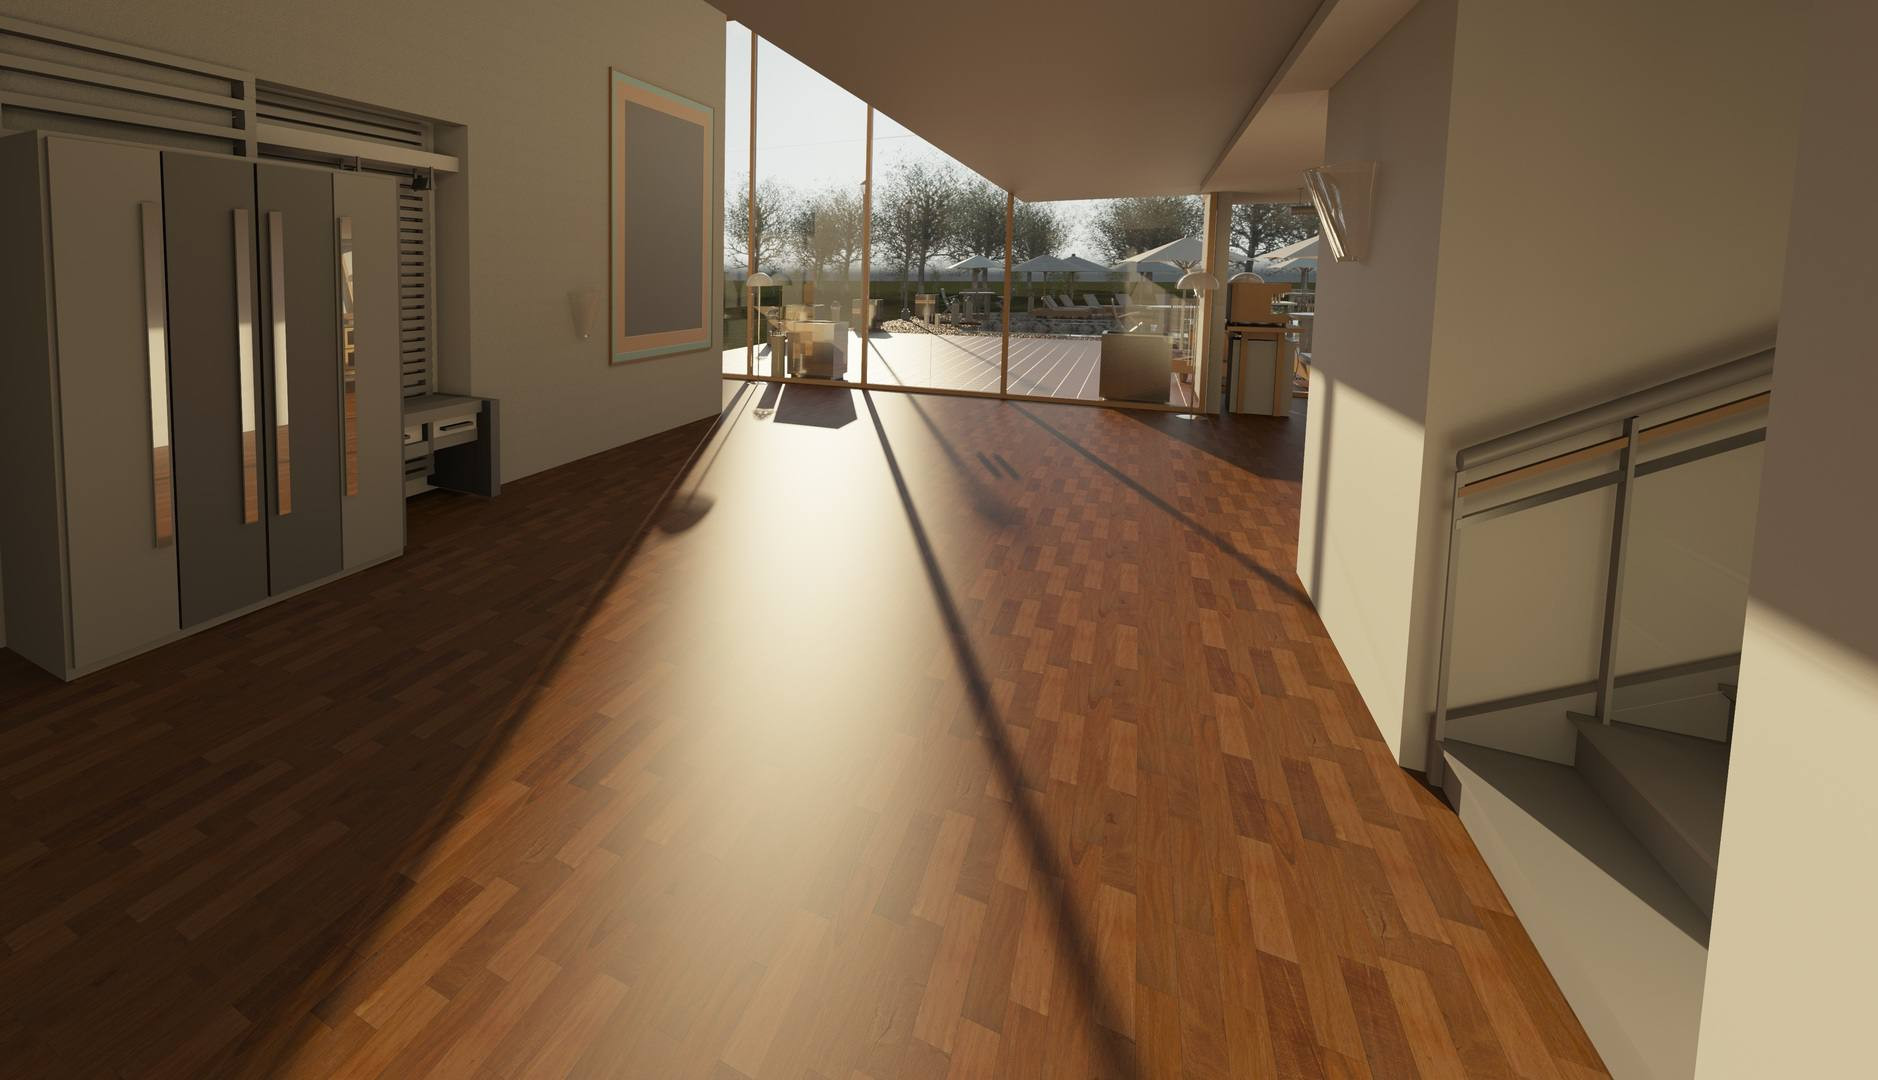 bamboo v hardwood flooring of common flooring types currently used in renovation and building with architecture wood house floor interior window 917178 pxhere com 5ba27a2cc9e77c00503b27b9